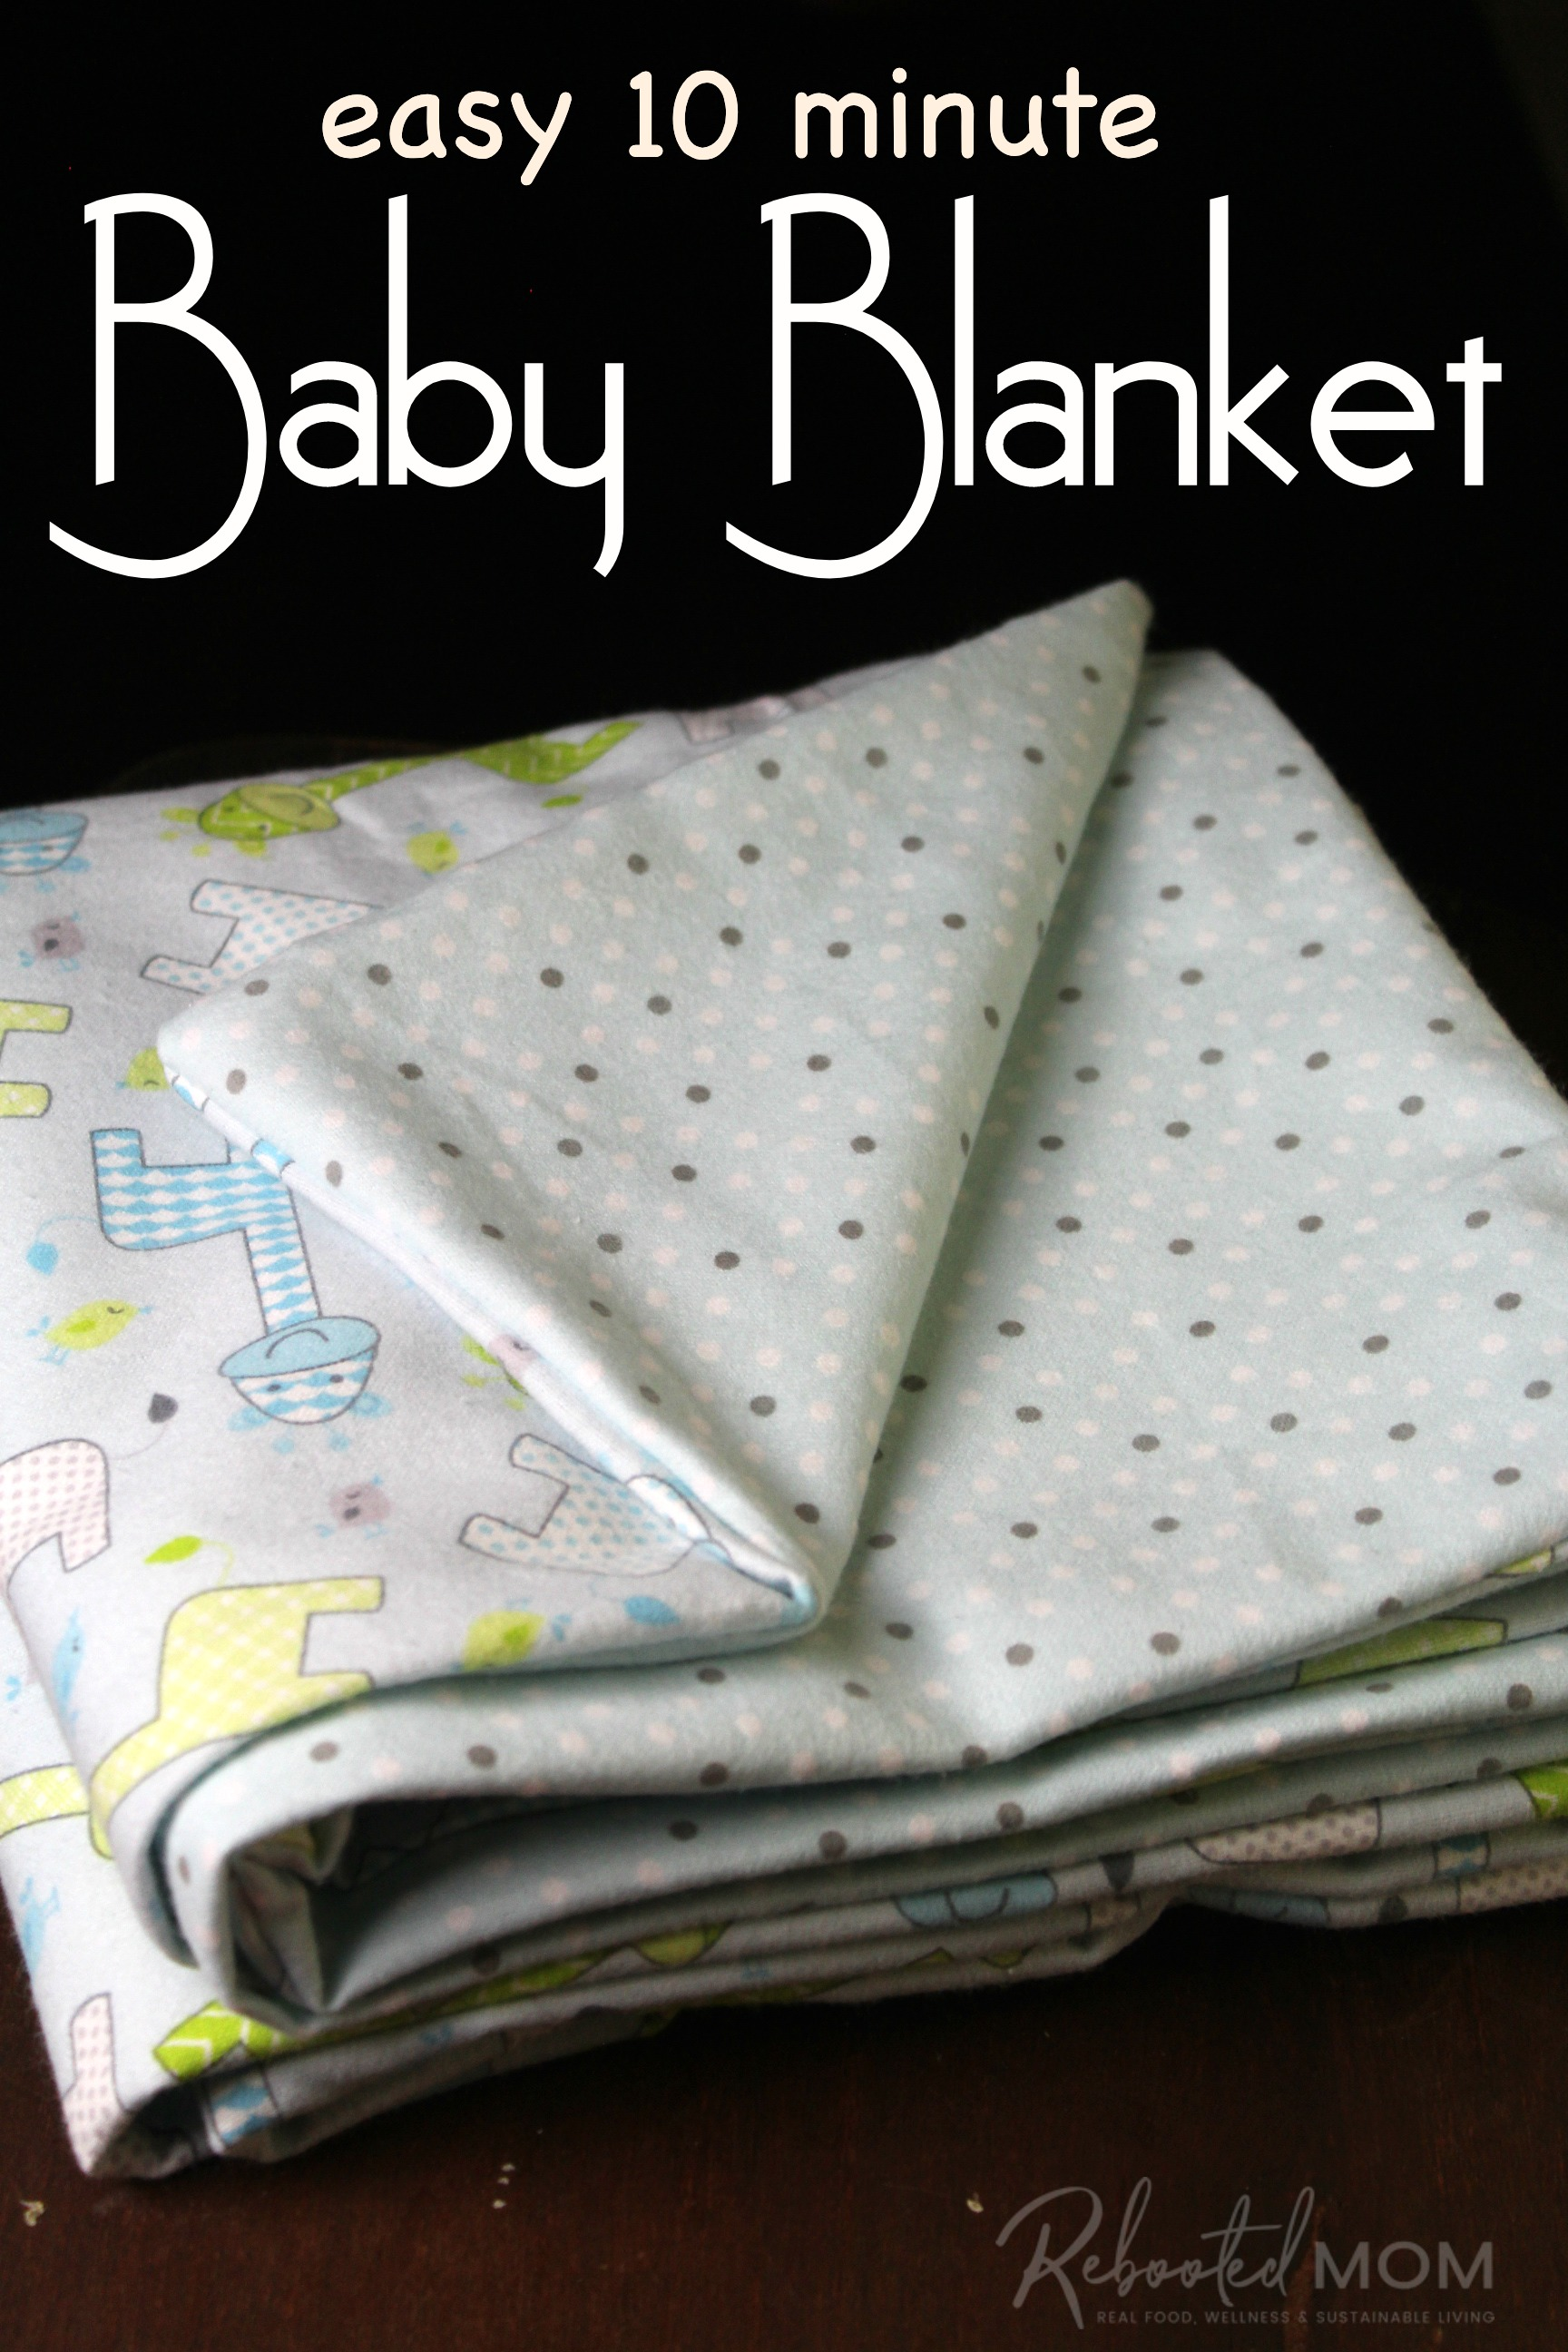 Easy 10 minute Baby Blanket Pattern